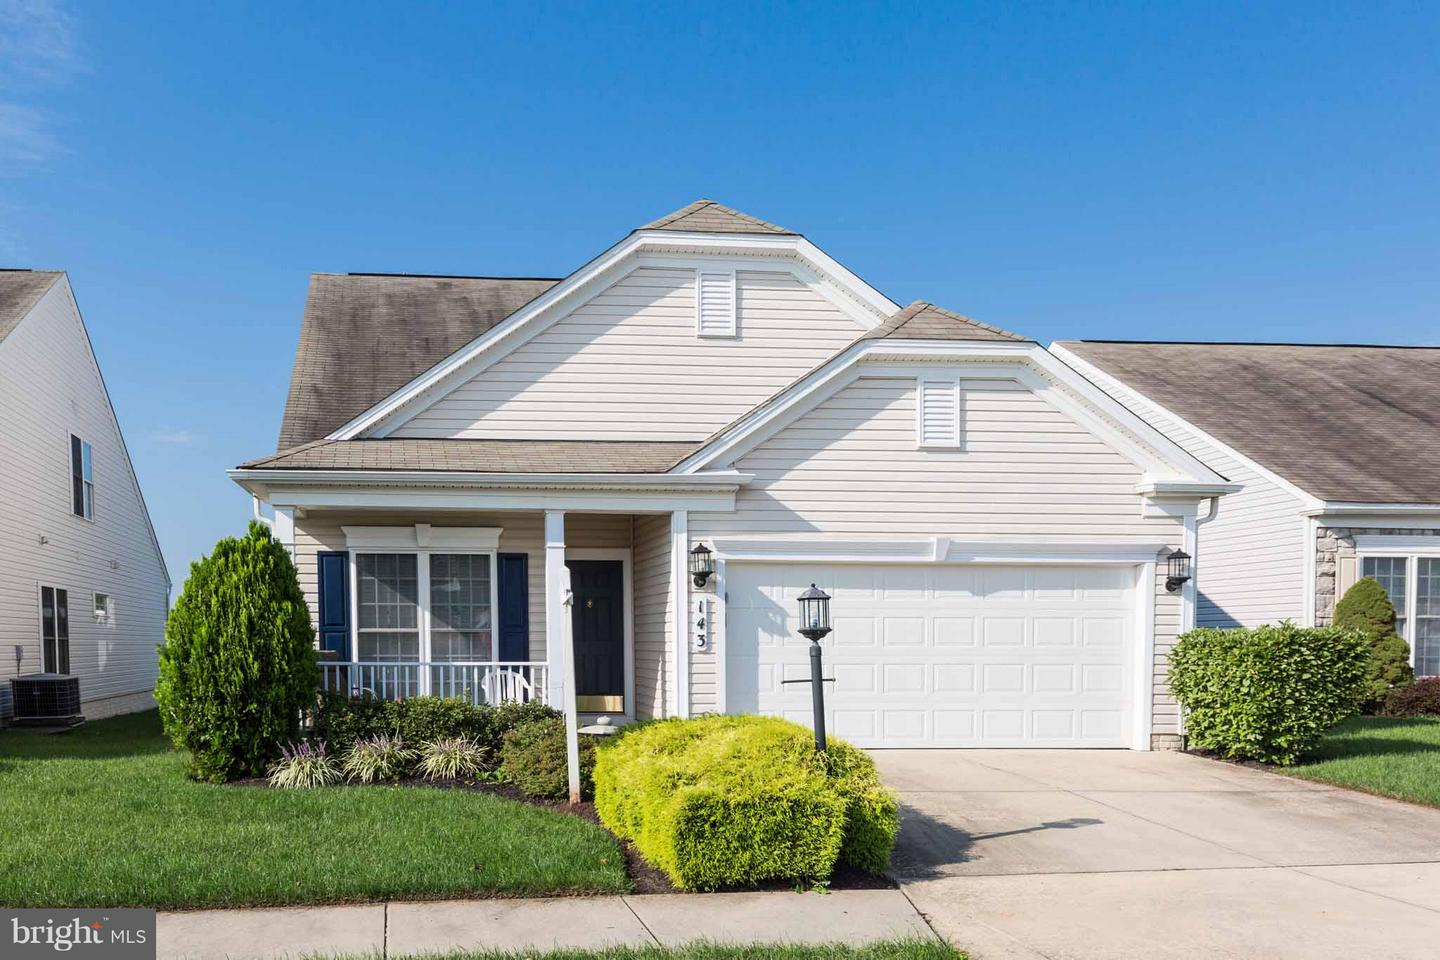 Single Family for Sale at 143 Saddletop Dr #383 Taneytown, Maryland 21787 United States